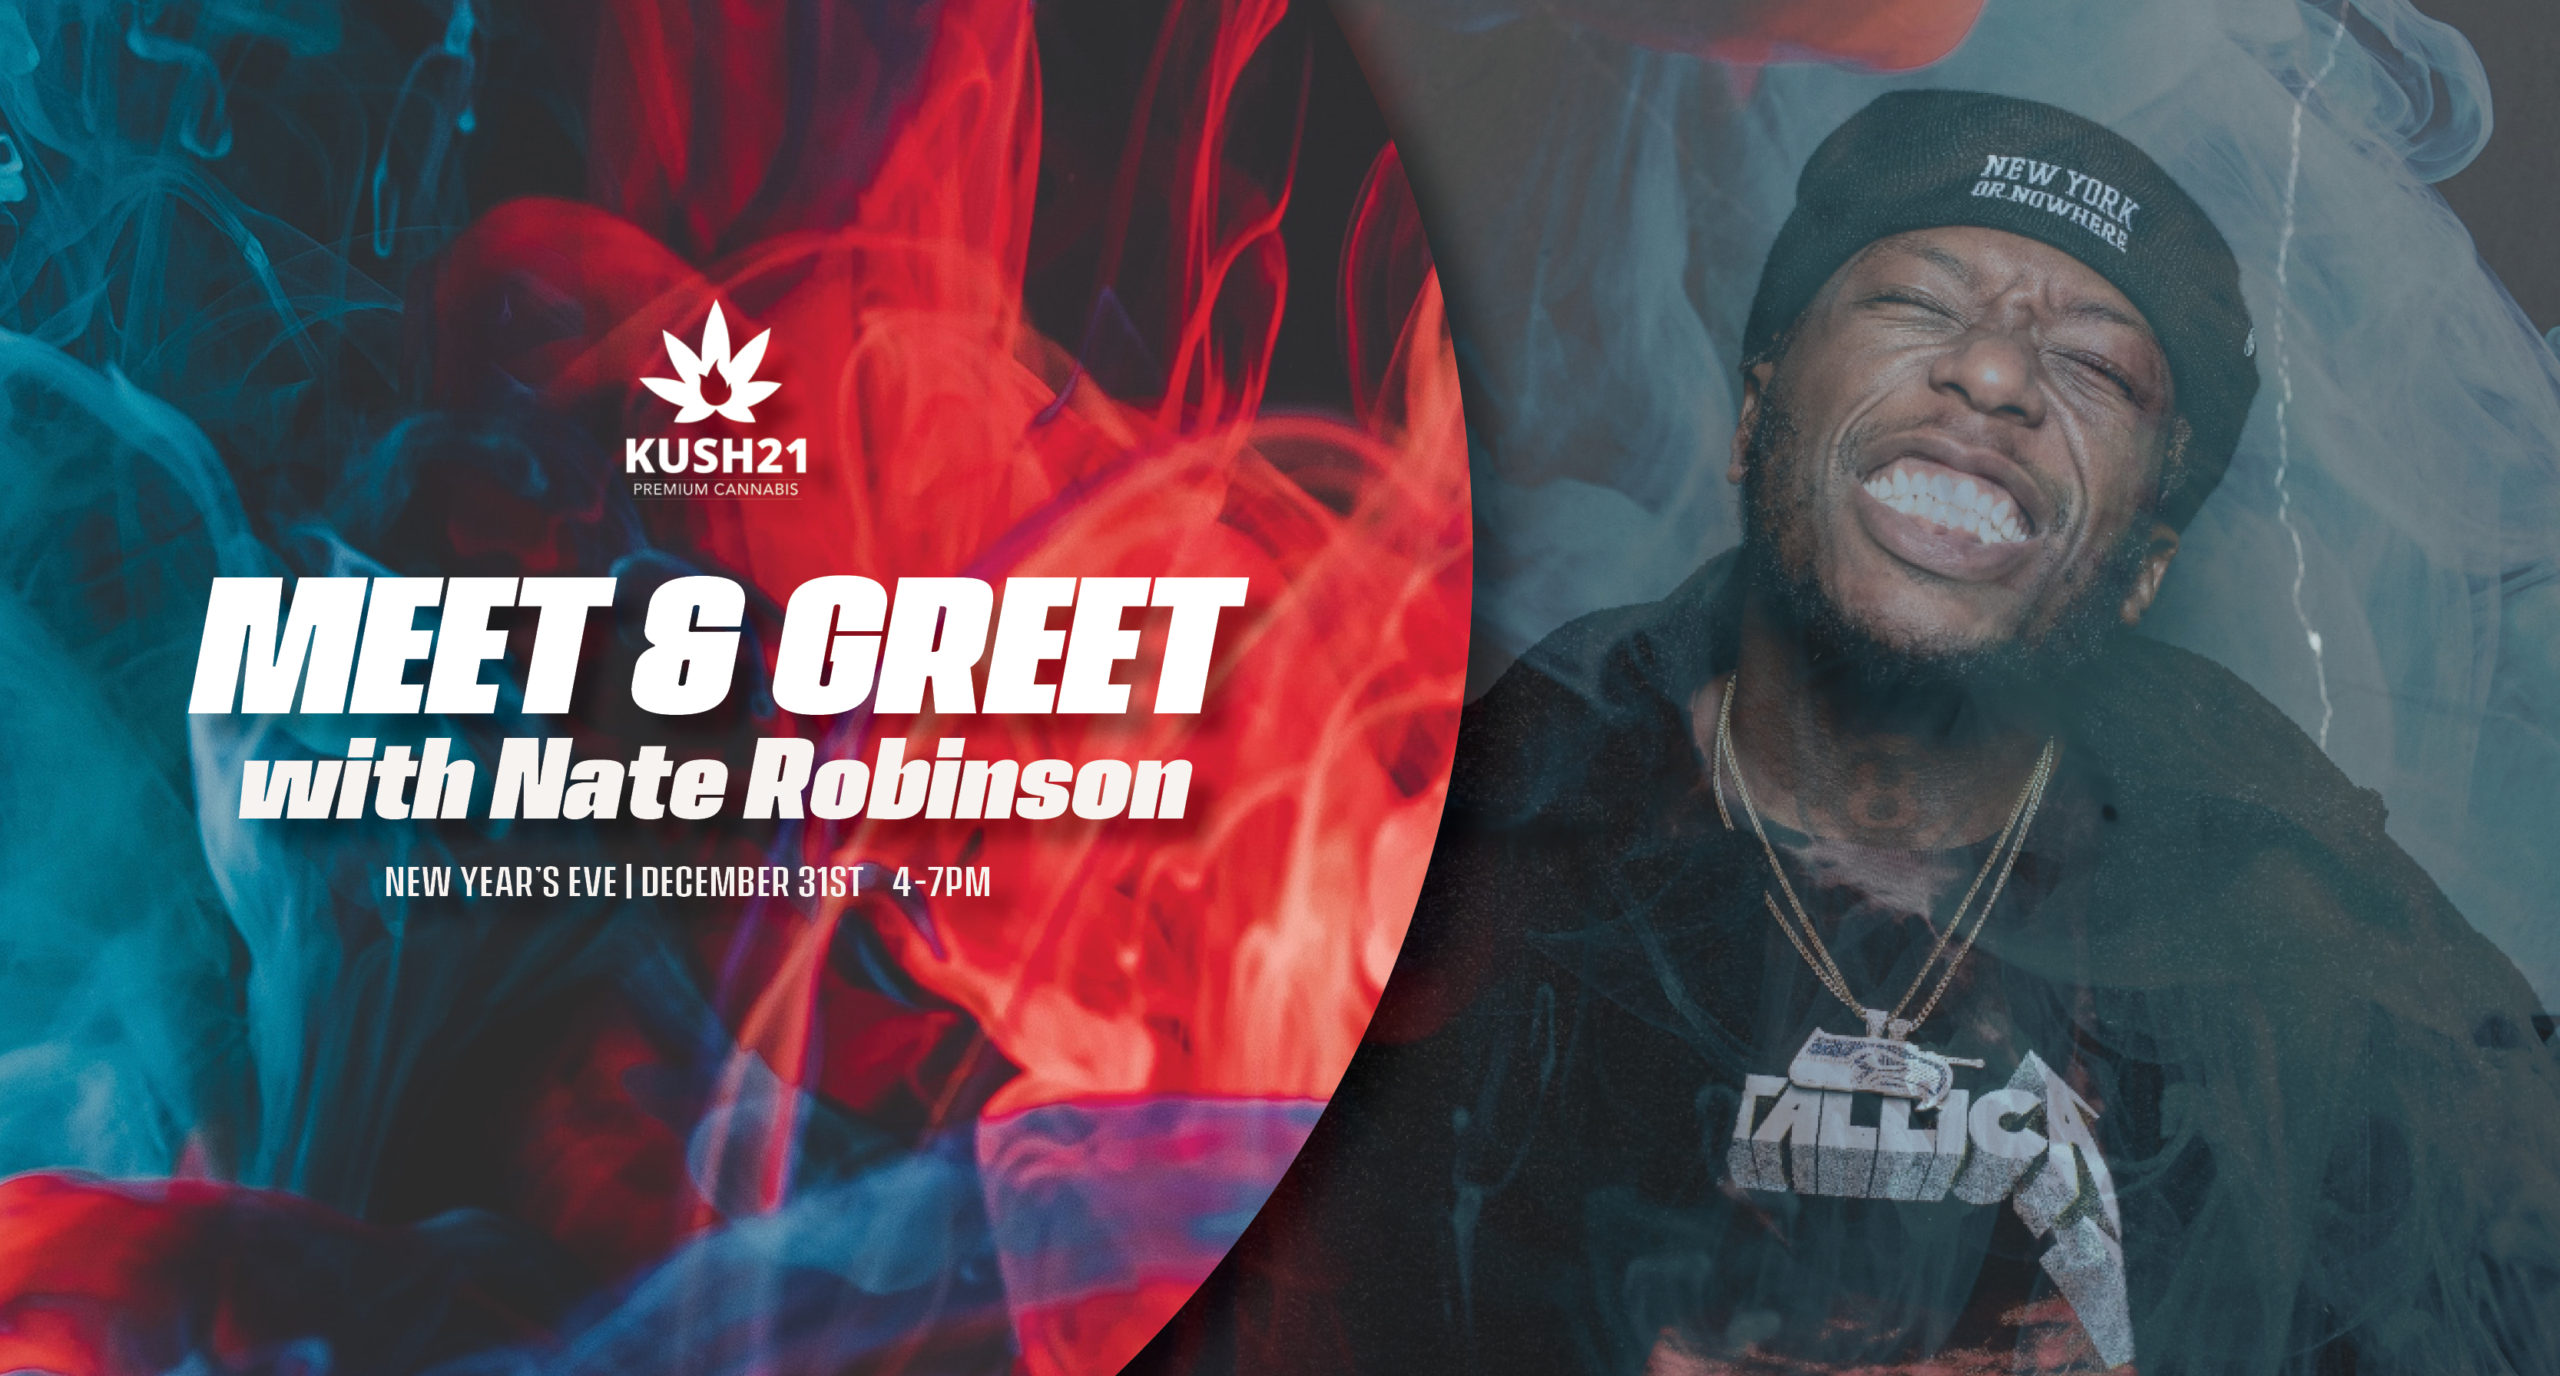 Meet & Greet with Nate Robinson